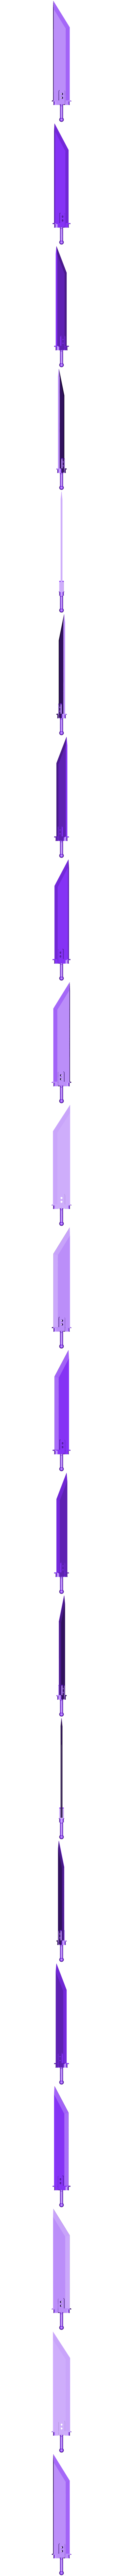 buster_sword_thicc.stl Download free STL file MINI BUSTER SWORD • 3D printable template, A_SKEWED_VIEW_3D